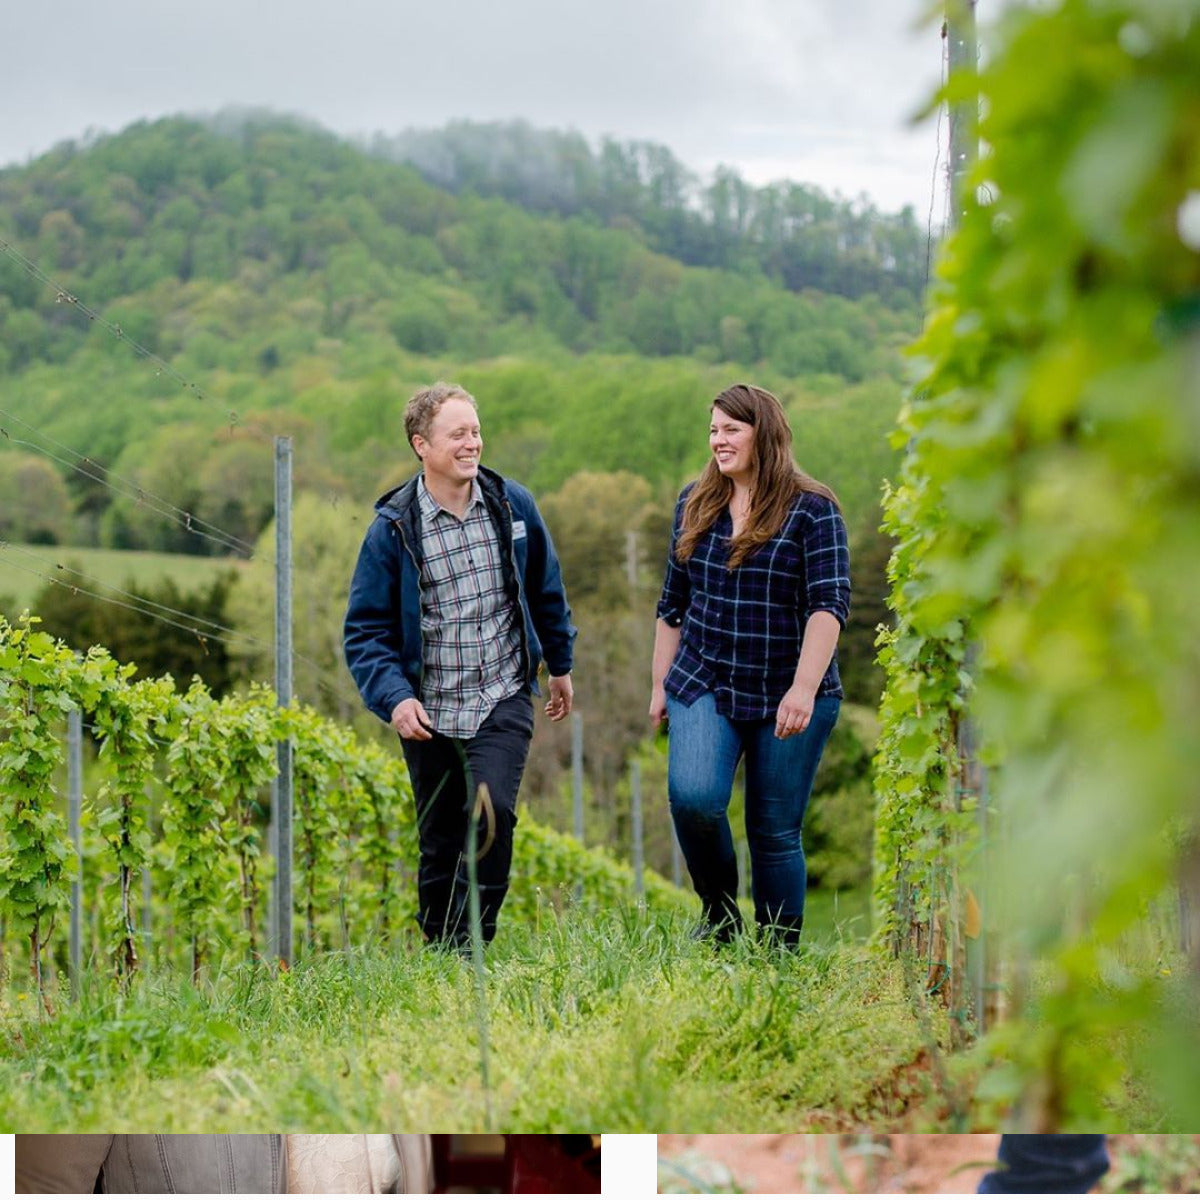 The Early Days Are Exciting: Virginia Wines' Emerging Originality